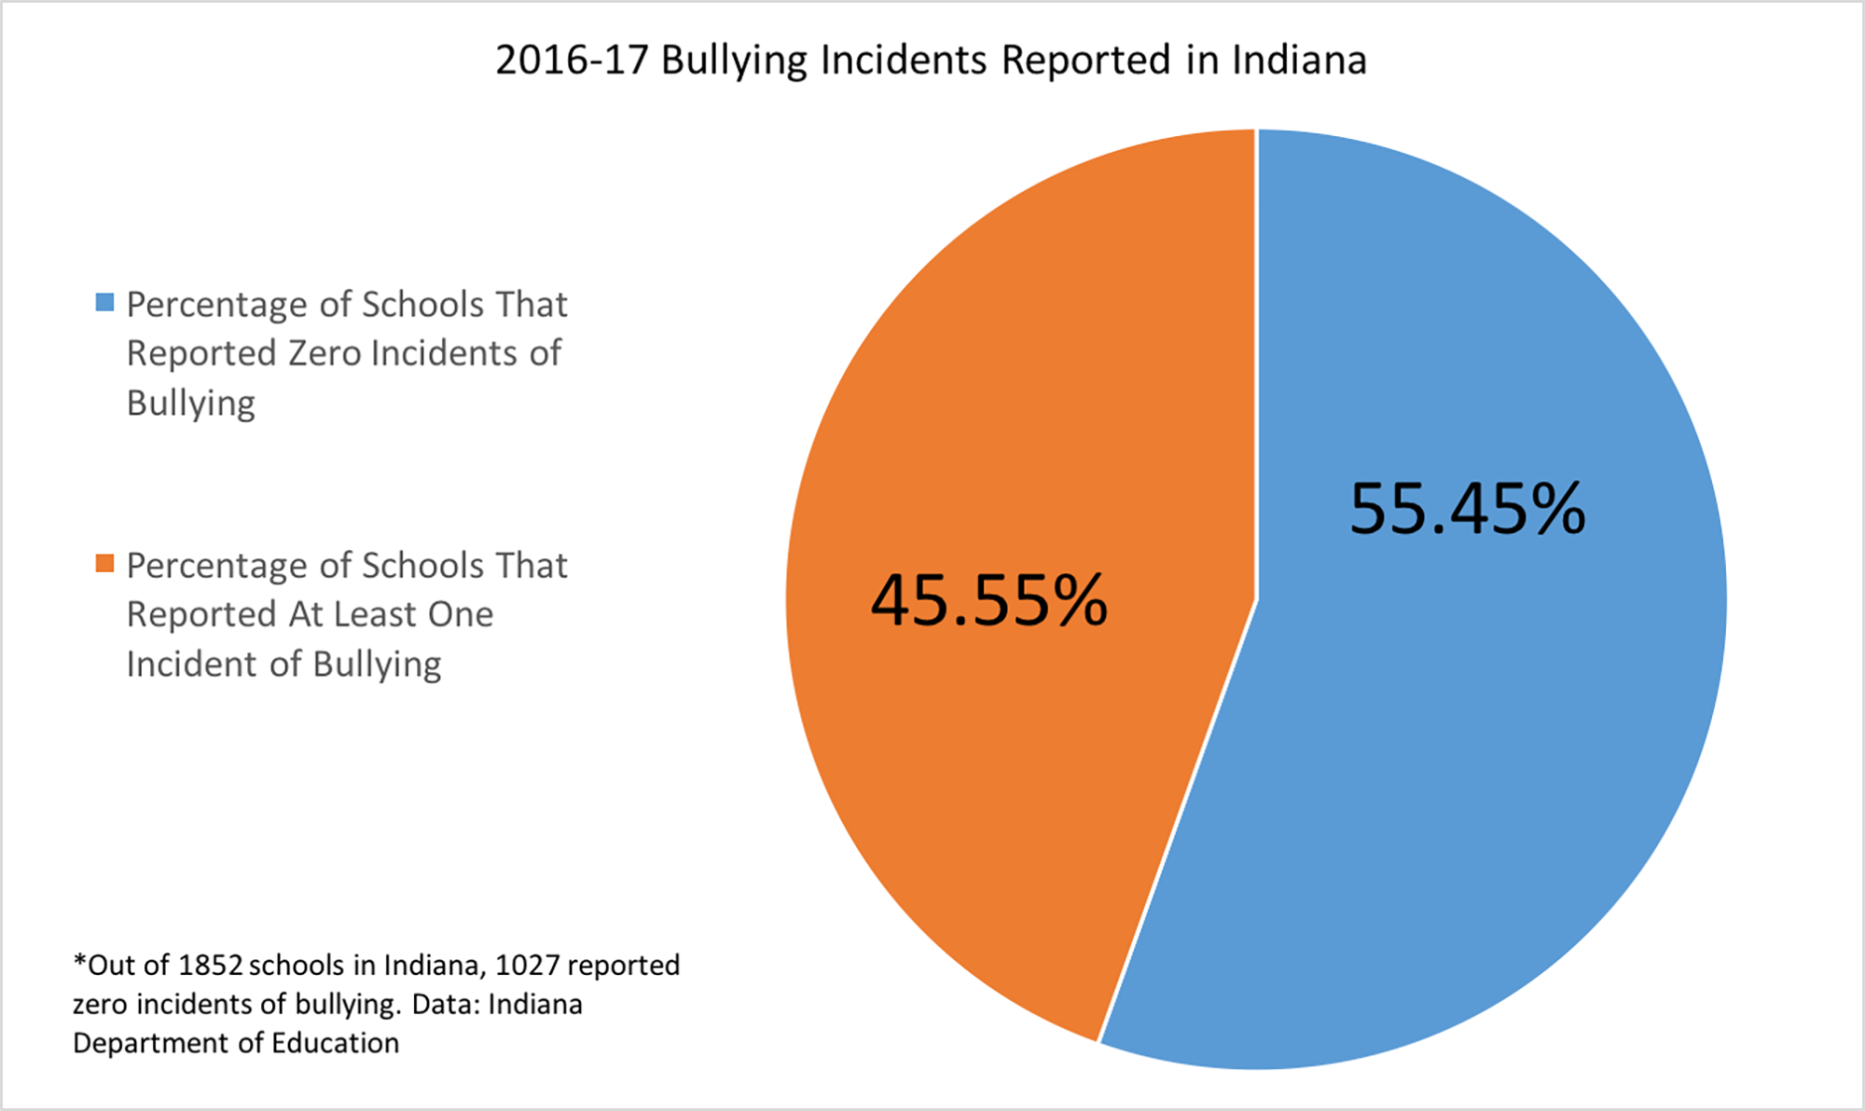 5aba7d056acce.image?resize=1200%2C715 indiana's new anti bullying law compels schools to report incidents